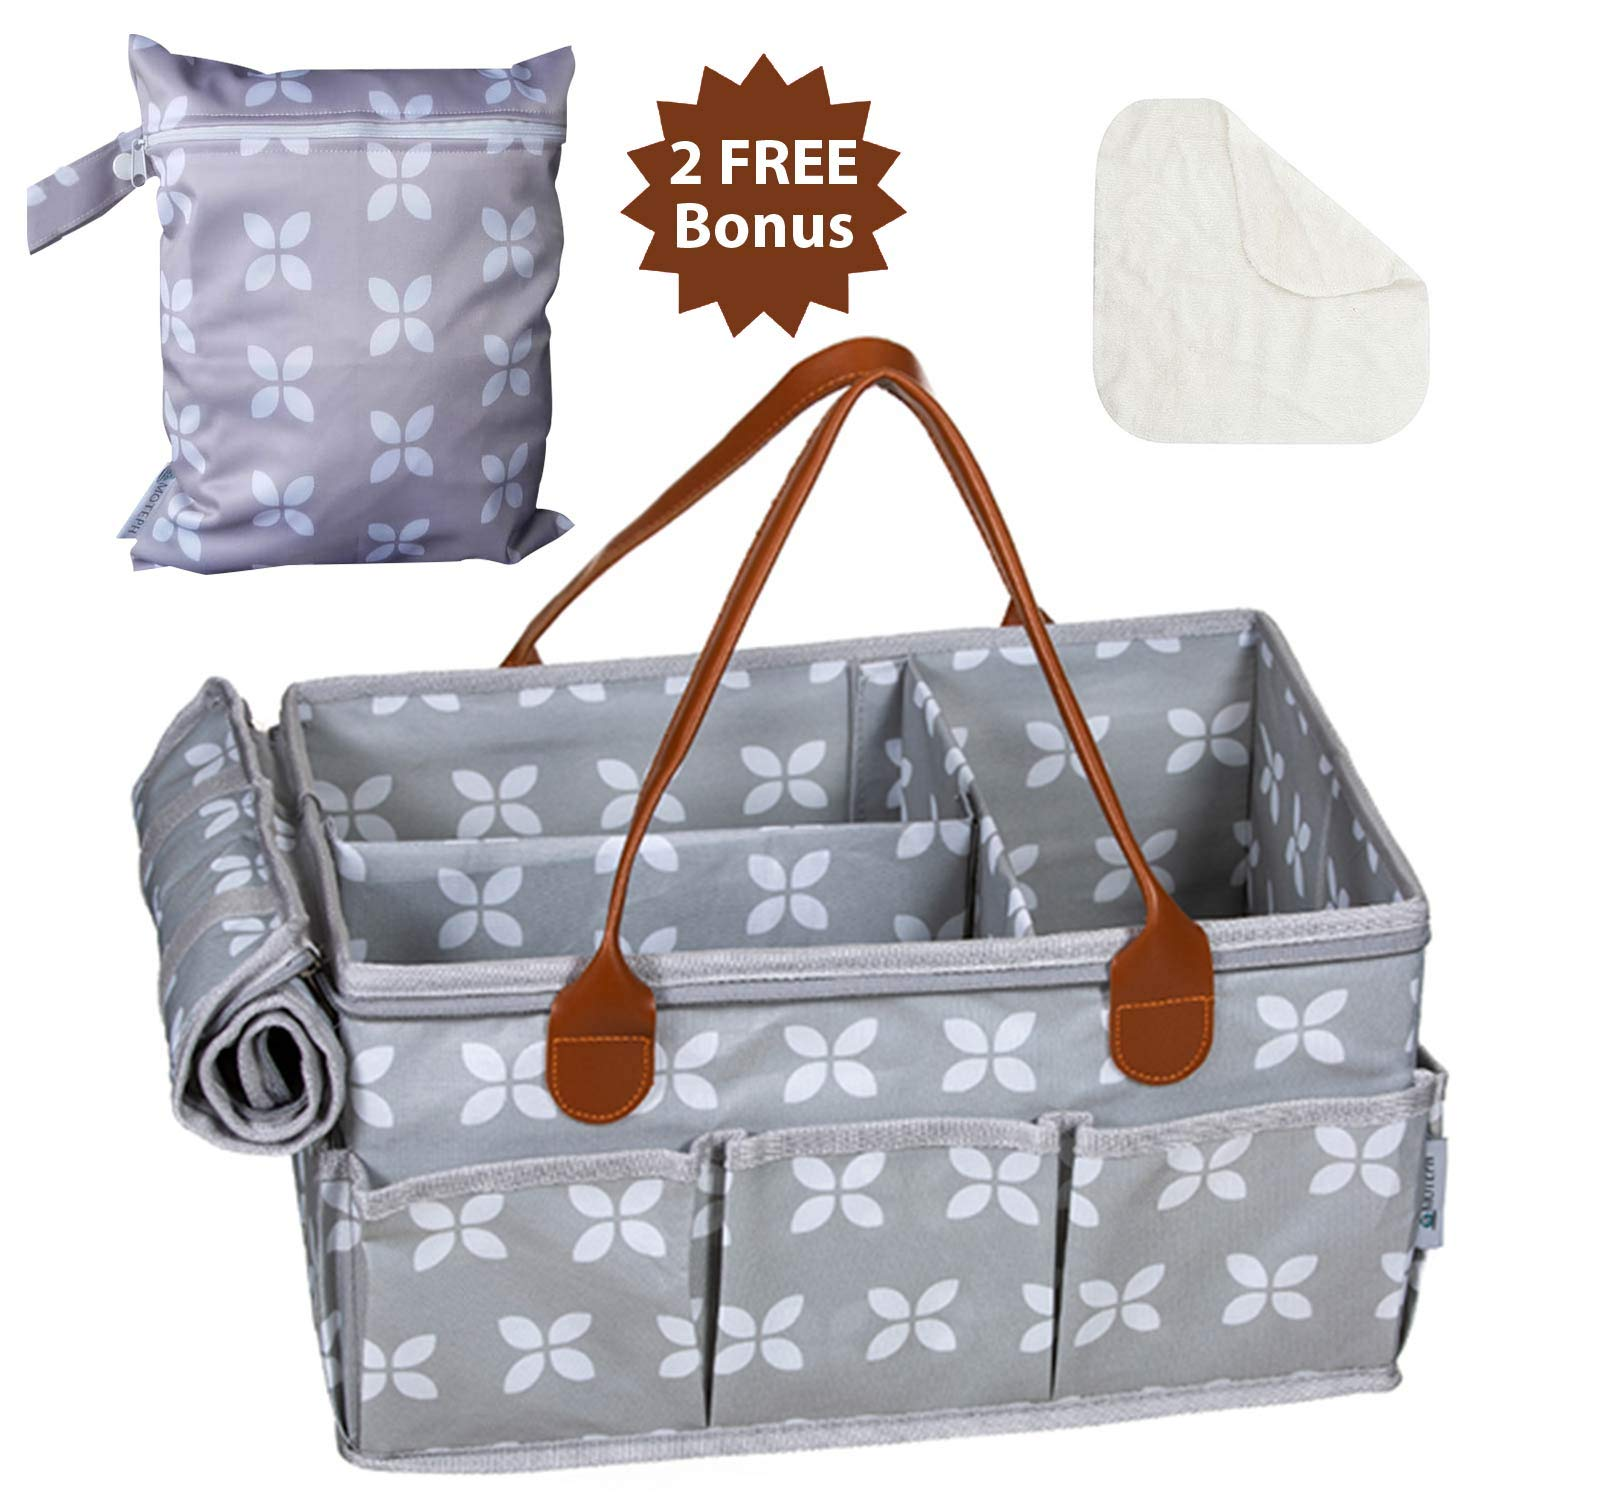 Isbasa Portable Baby Diaper Caddy Organizer Large Size Nursery Essentials Storage Bins for Changing Table or Car Travel Basket with 2 Changing Pad Tote Nappy Caddy Organizer